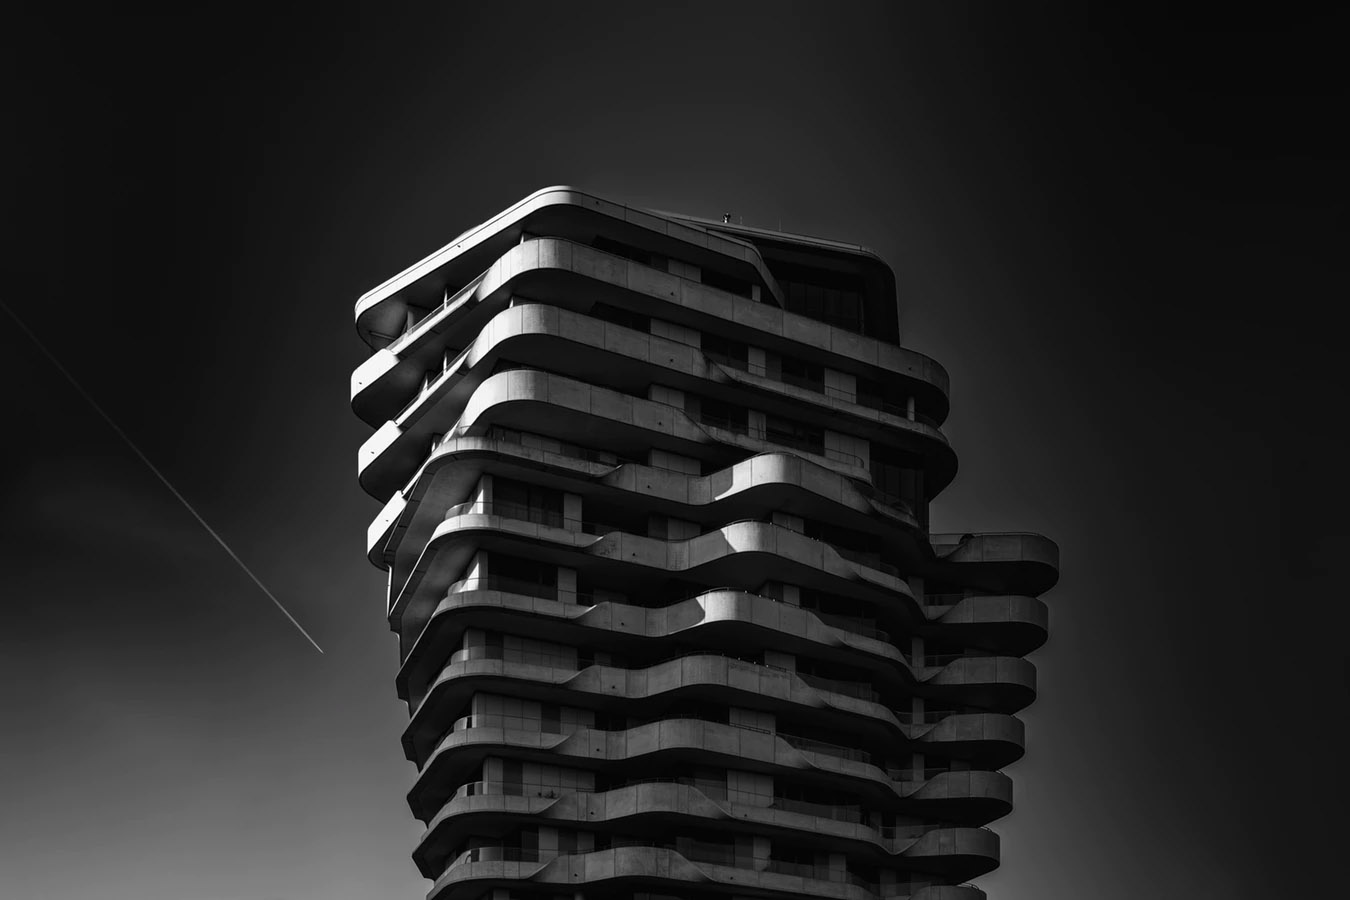 Archisoup-black-white-building-photography.jpg